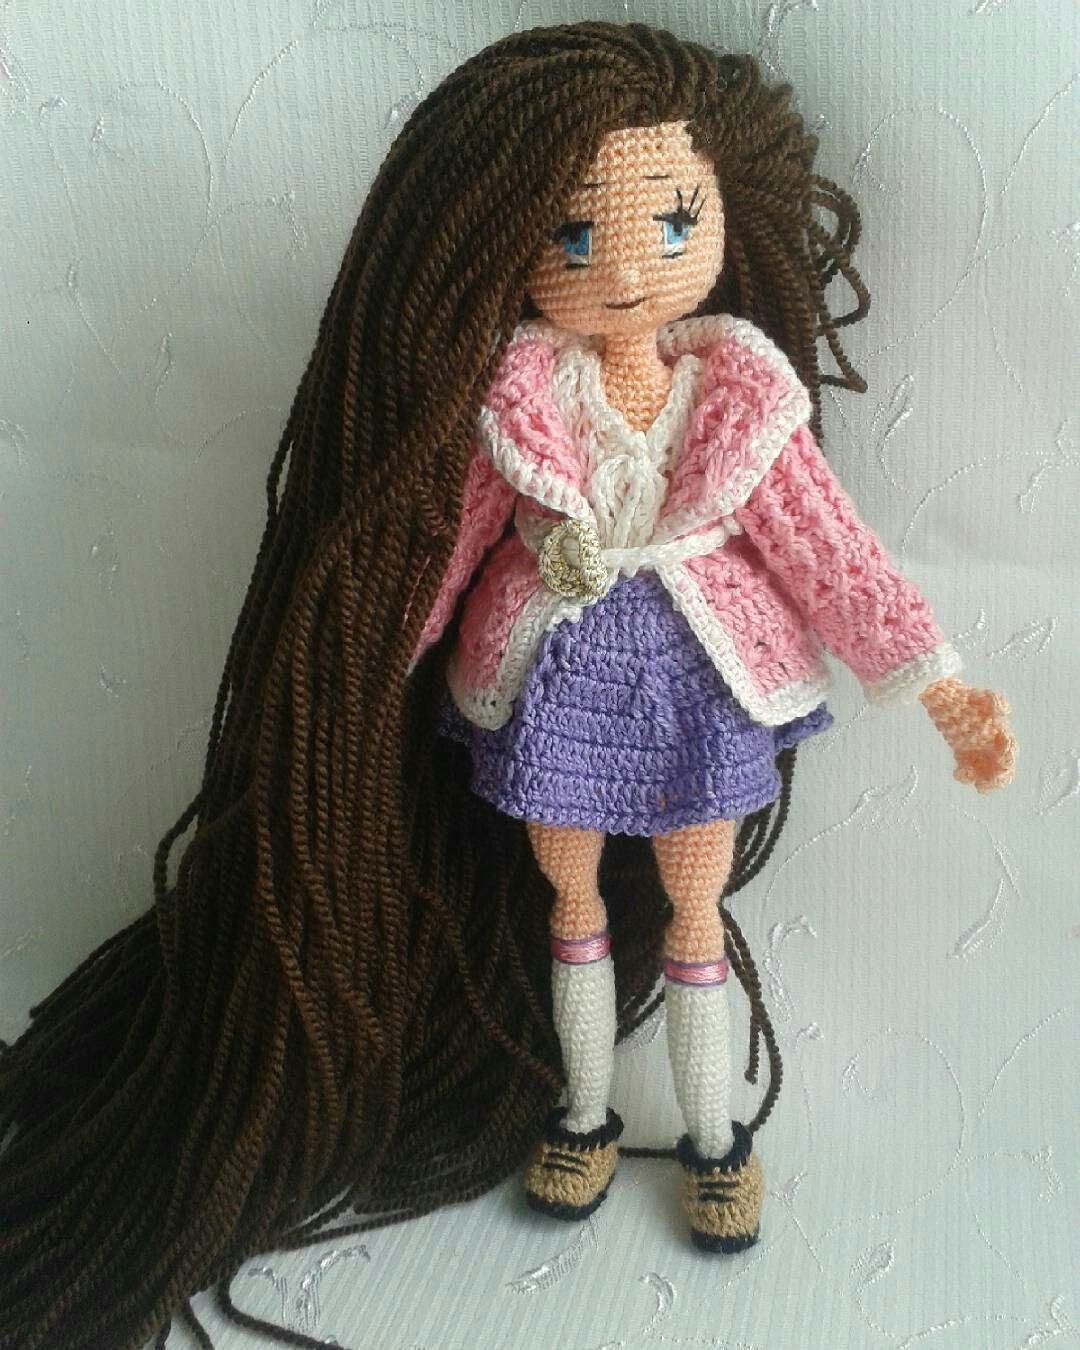 Made by amigurumi-yuliya-hamzina ♡